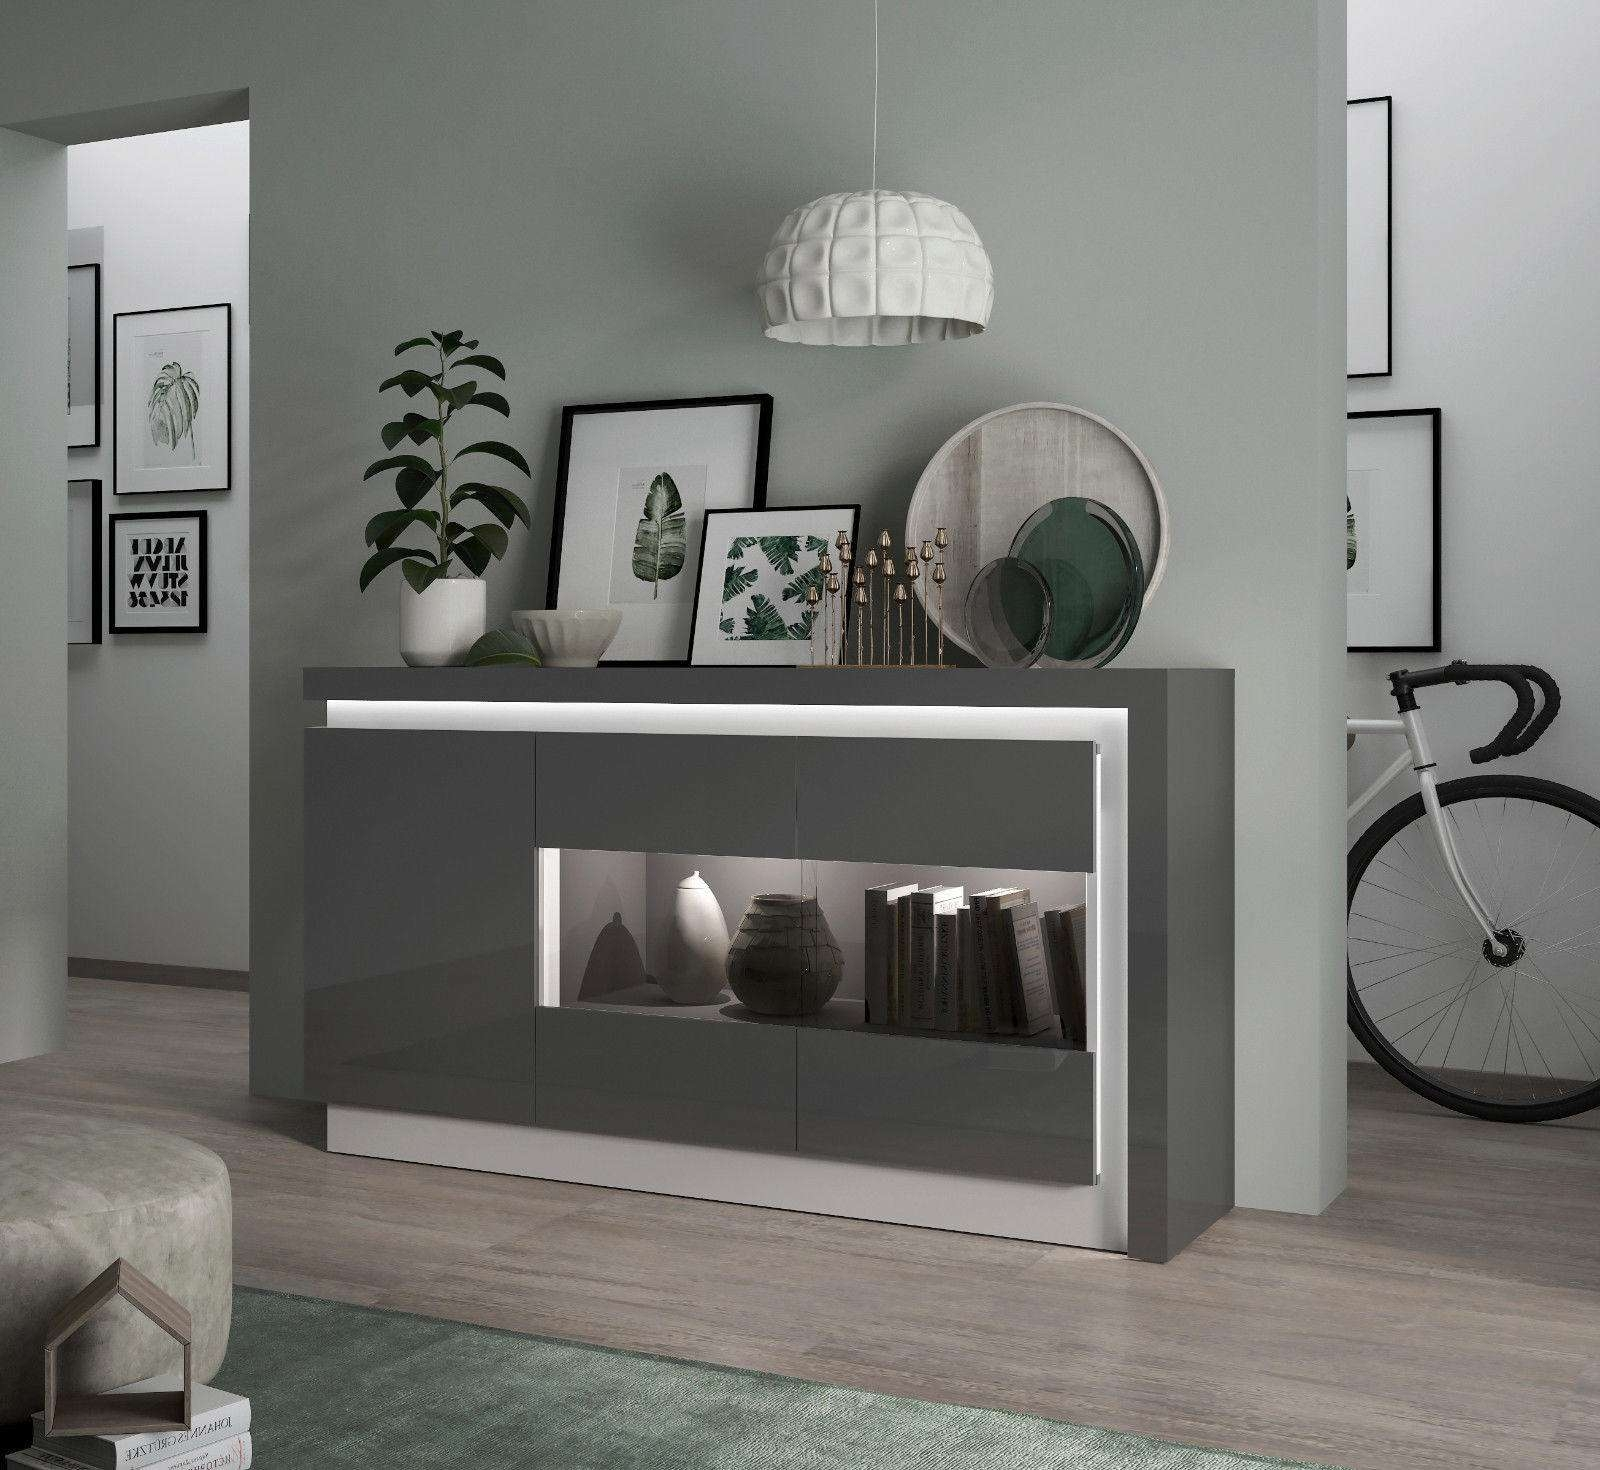 Buy Oak, Painted, High Gloss And Modern Sideboards At Furniture Inside Gloss Sideboards Furniture (View 3 of 20)